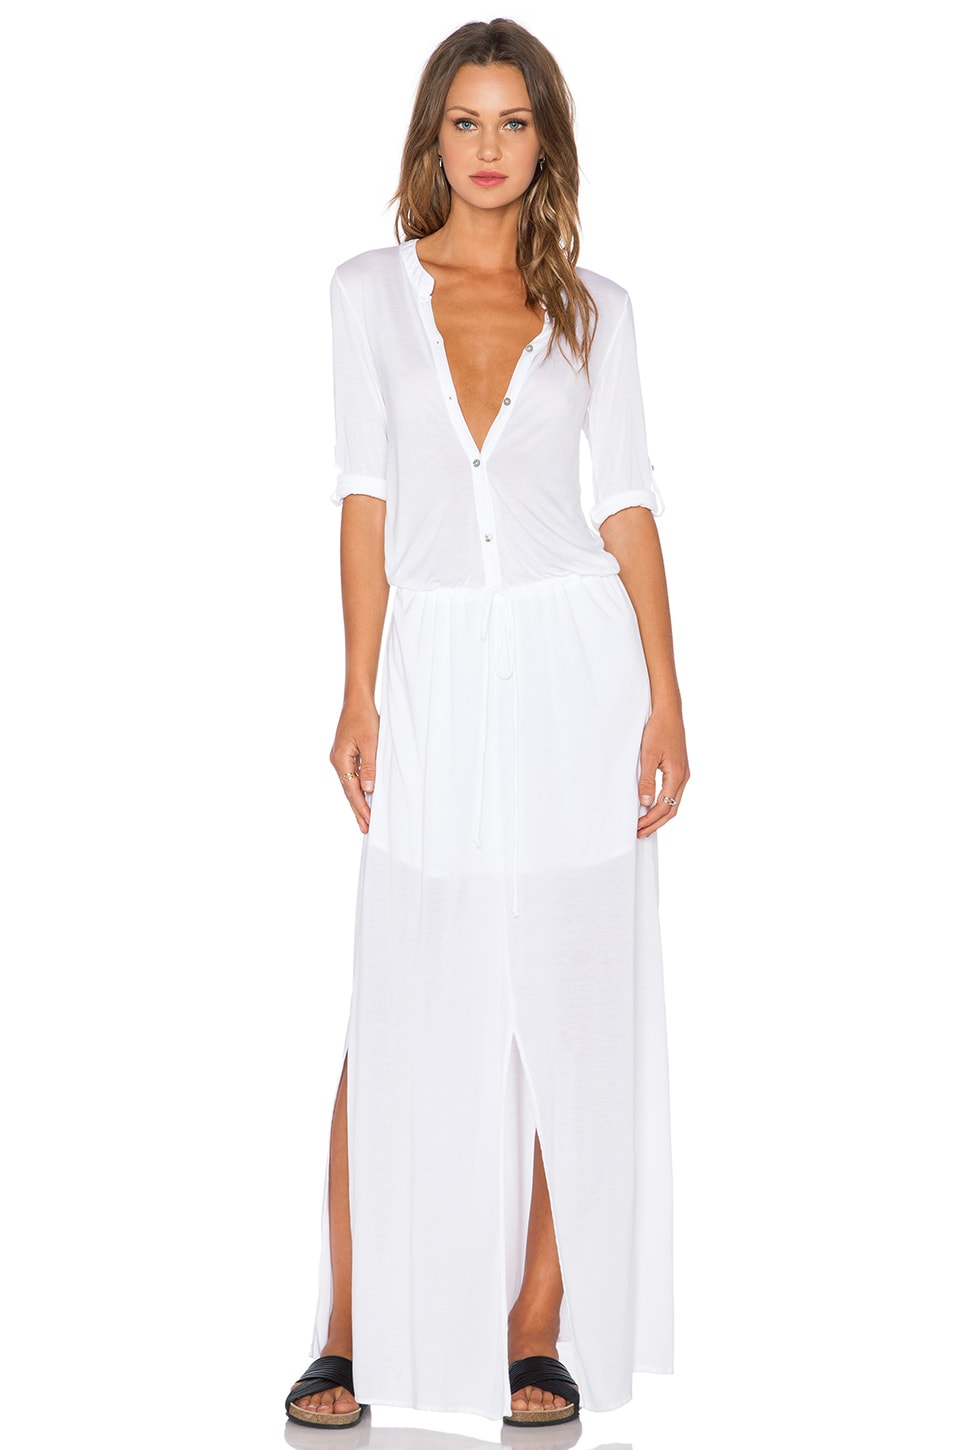 Michael Stars 3/4 Sleeve Maxi Shirtdress in White